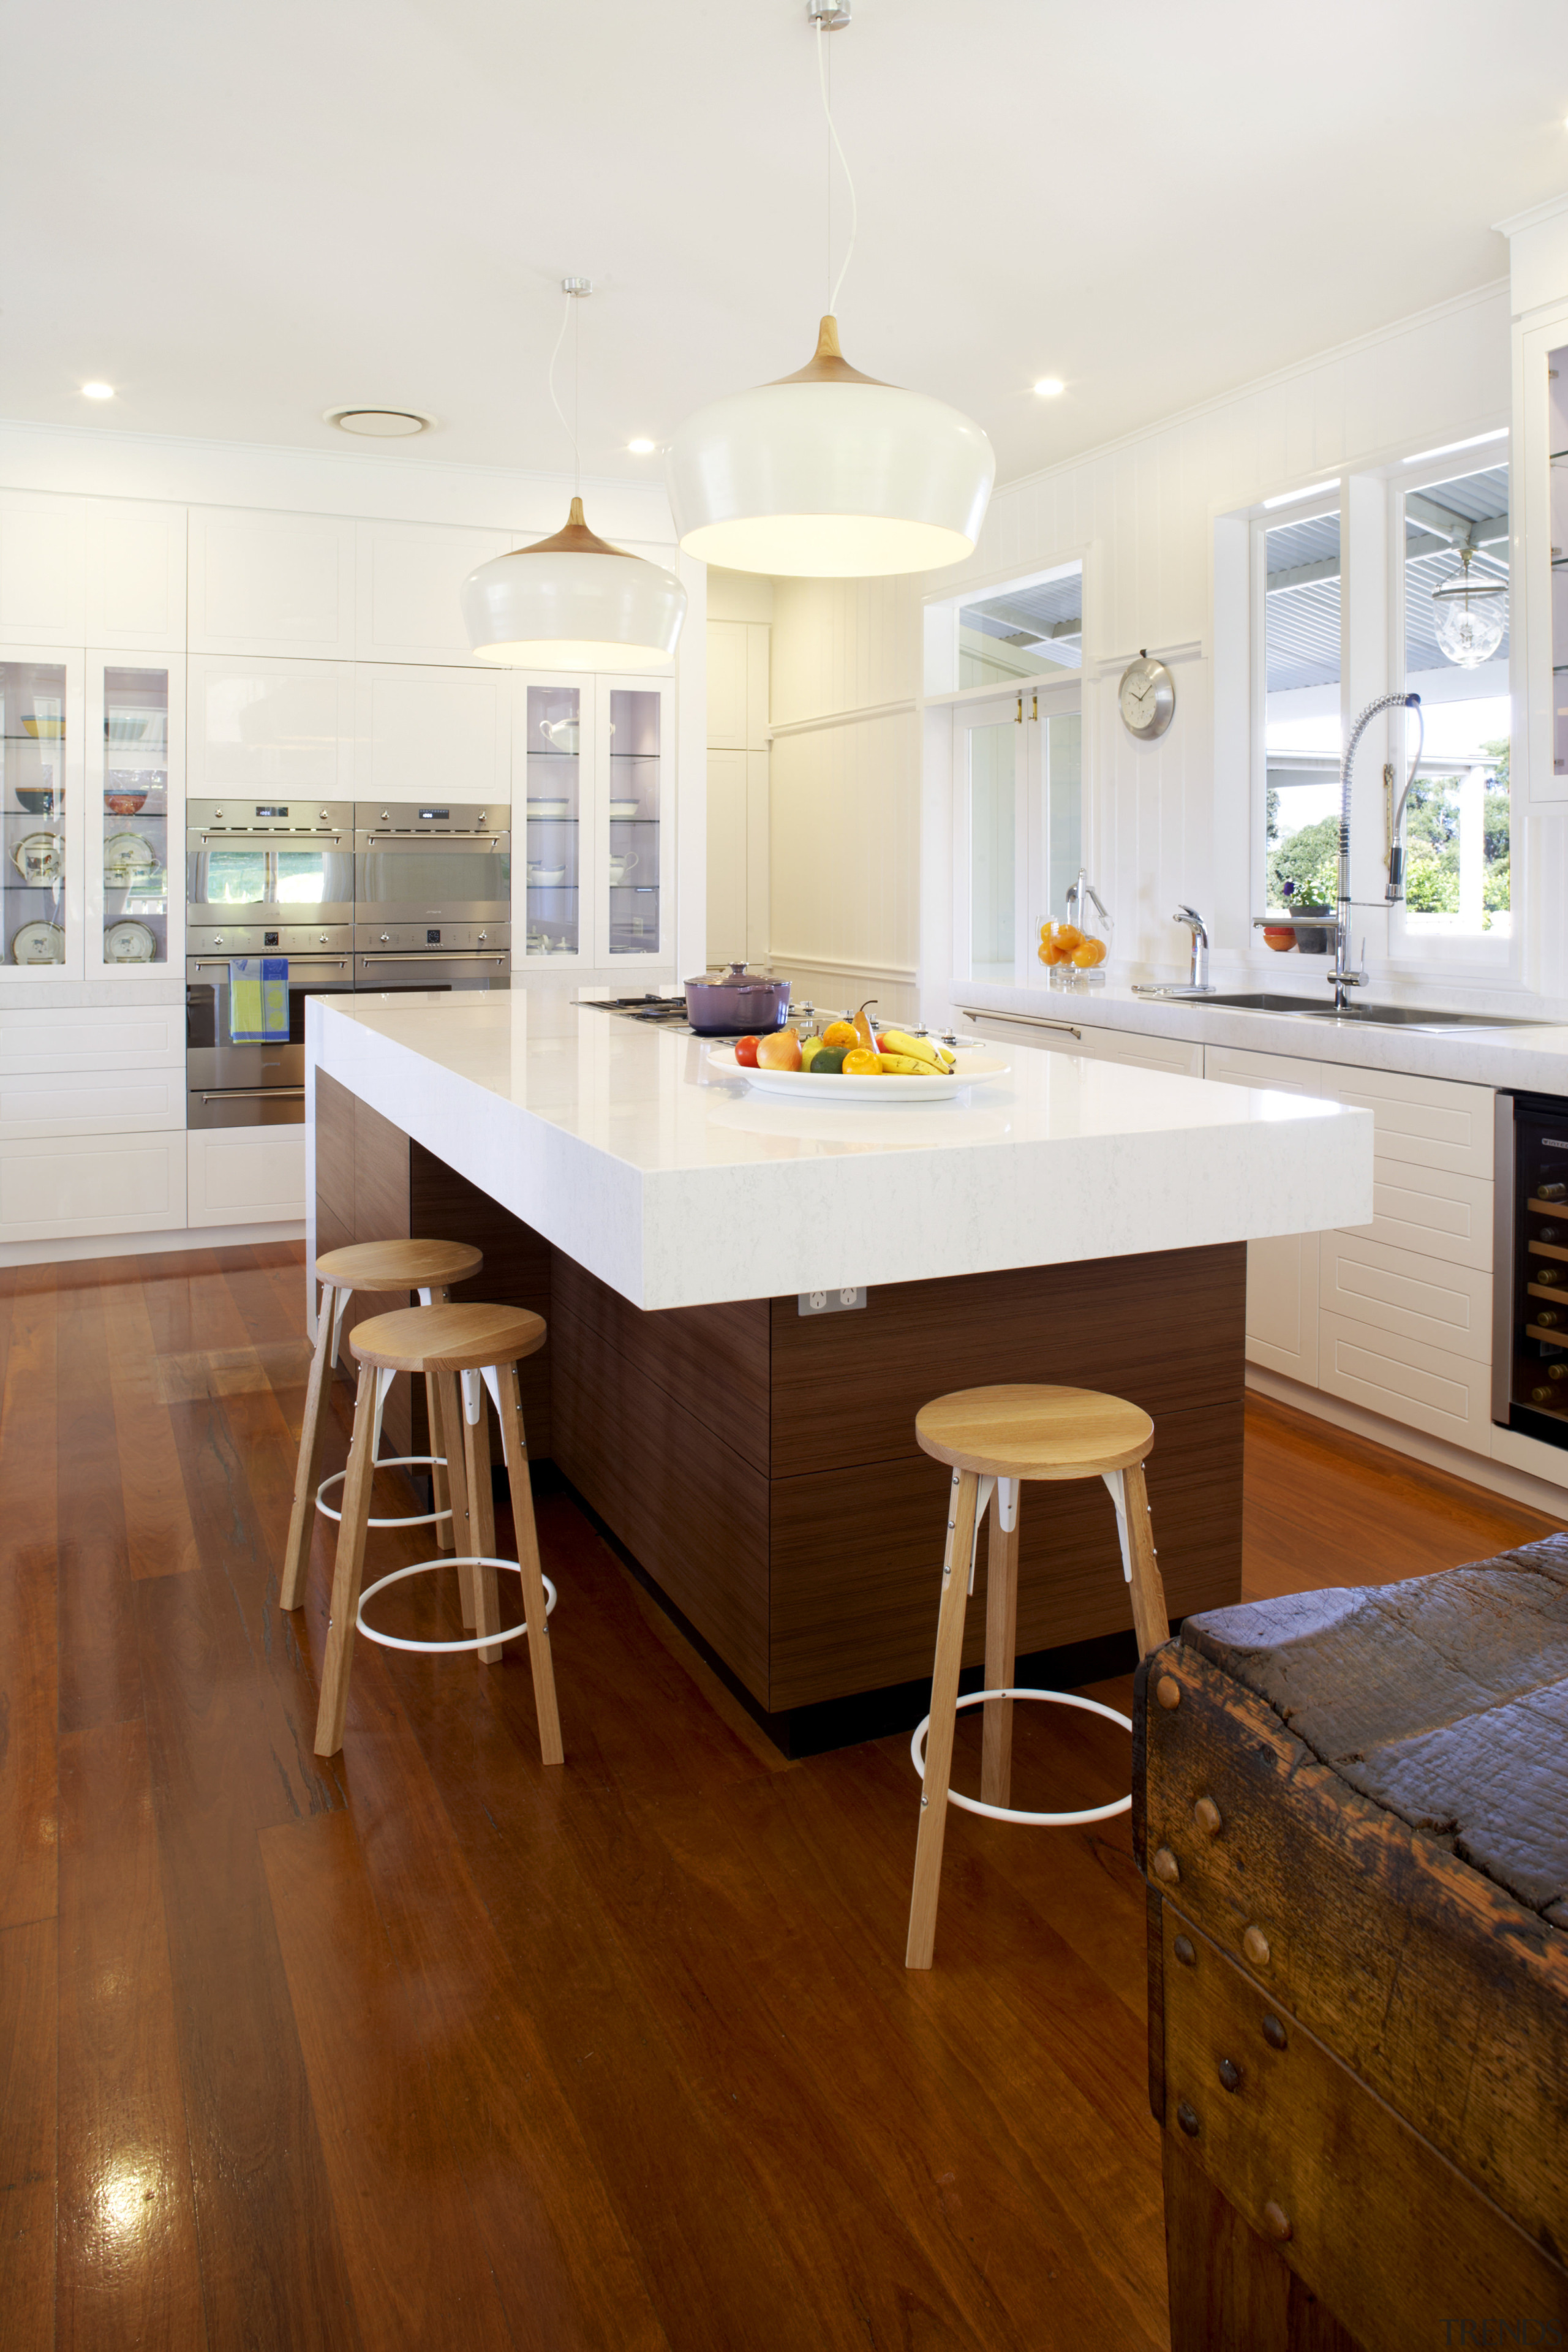 Clean, crisp cabinets are juxtaposed against a well-worn cabinetry, ceiling, countertop, cuisine classique, floor, flooring, hardwood, home, interior design, kitchen, laminate flooring, real estate, room, table, wood, wood flooring, white, brown